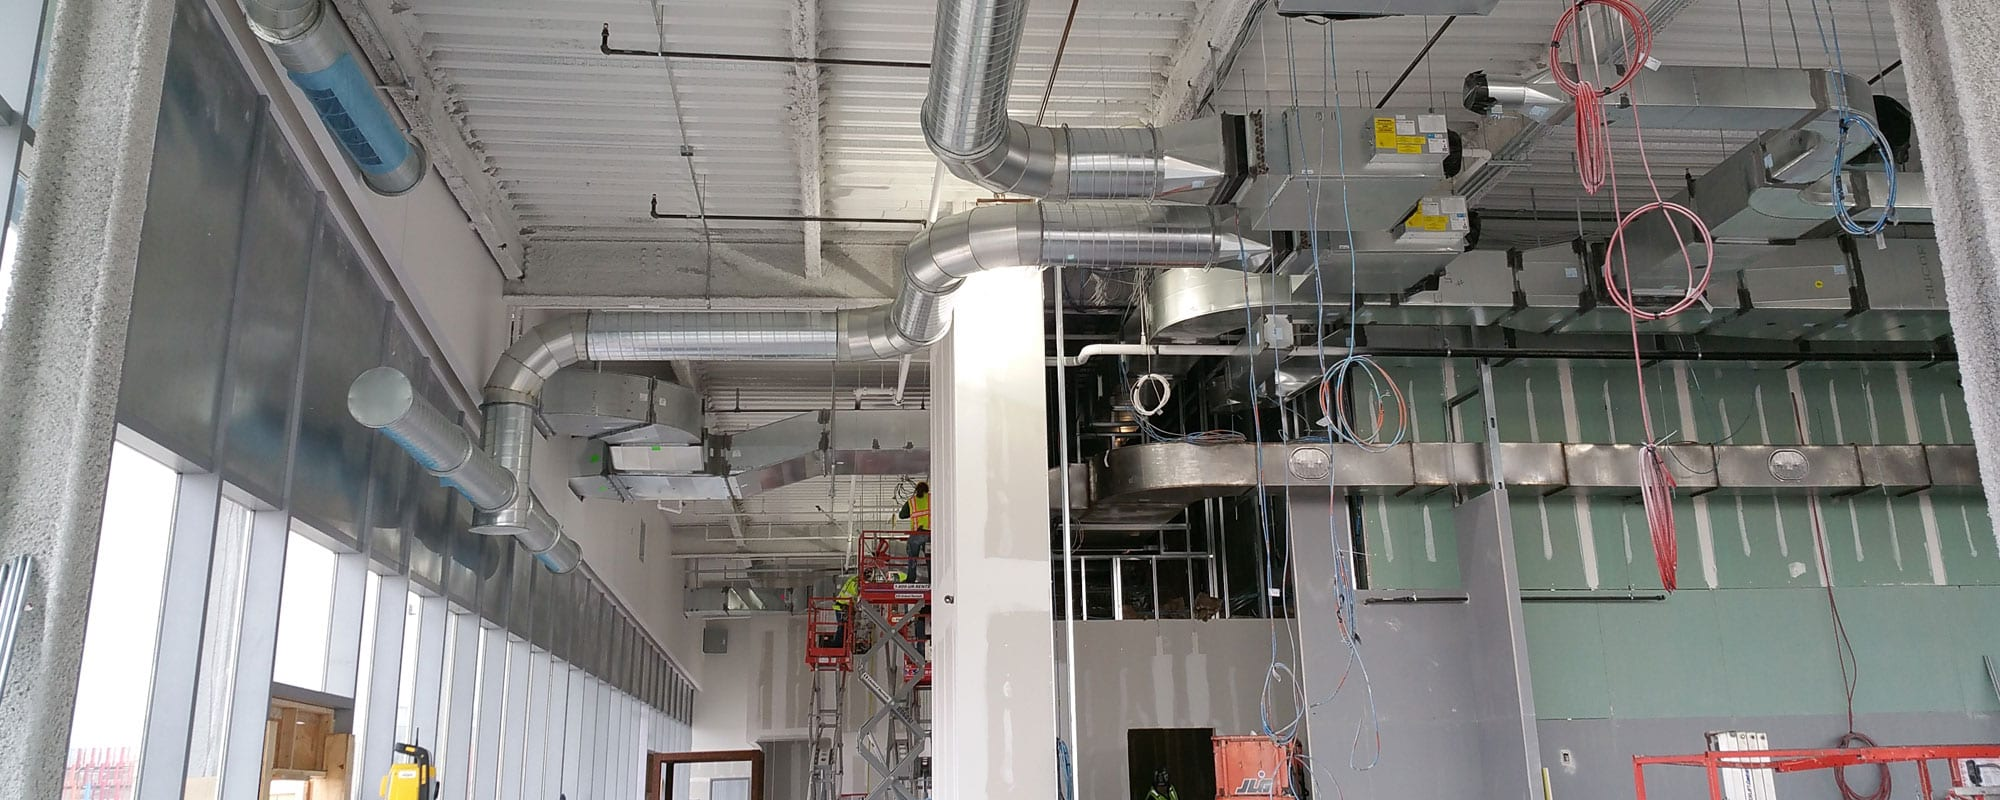 Sheet Metal and Air Conditioning – Sheet Metal & Air Conditioning